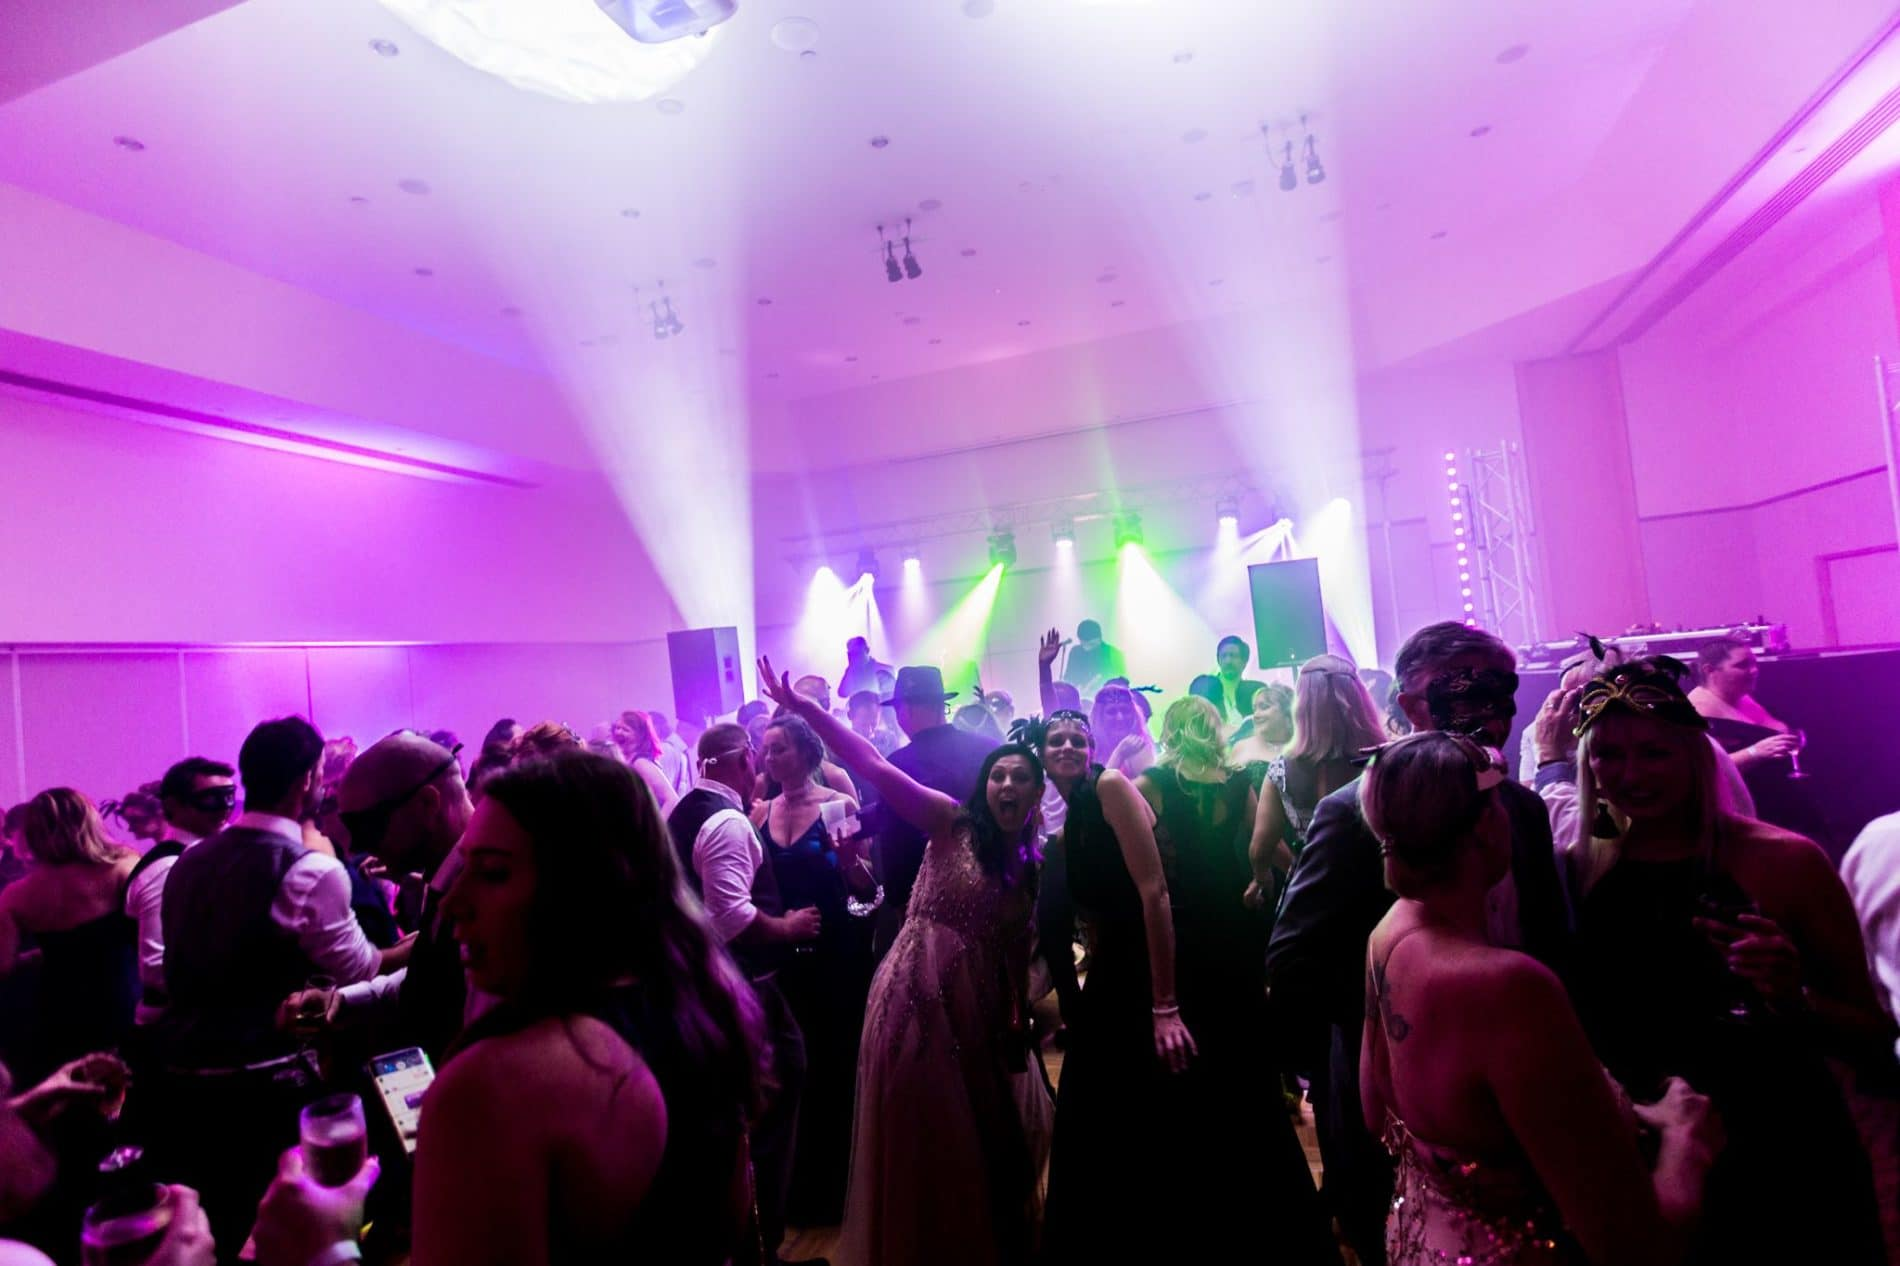 Masquerade ball entertanment - a packed dancefloor in Brisbane